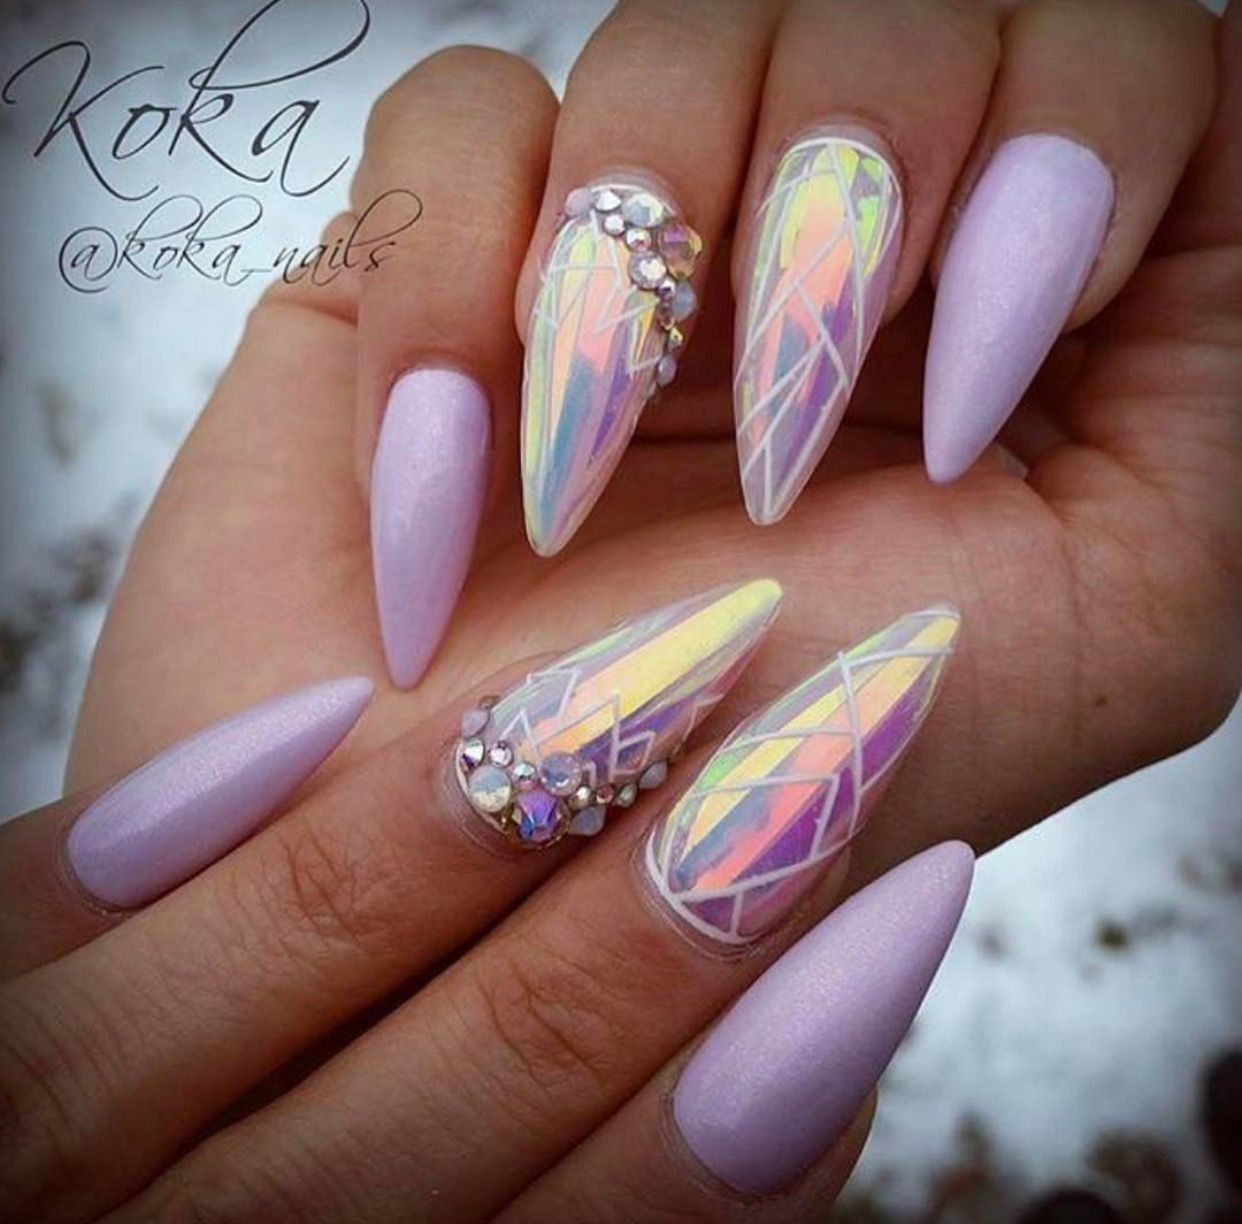 Pin by Kristy Gawley on Manicures | Pinterest | Holographic ...